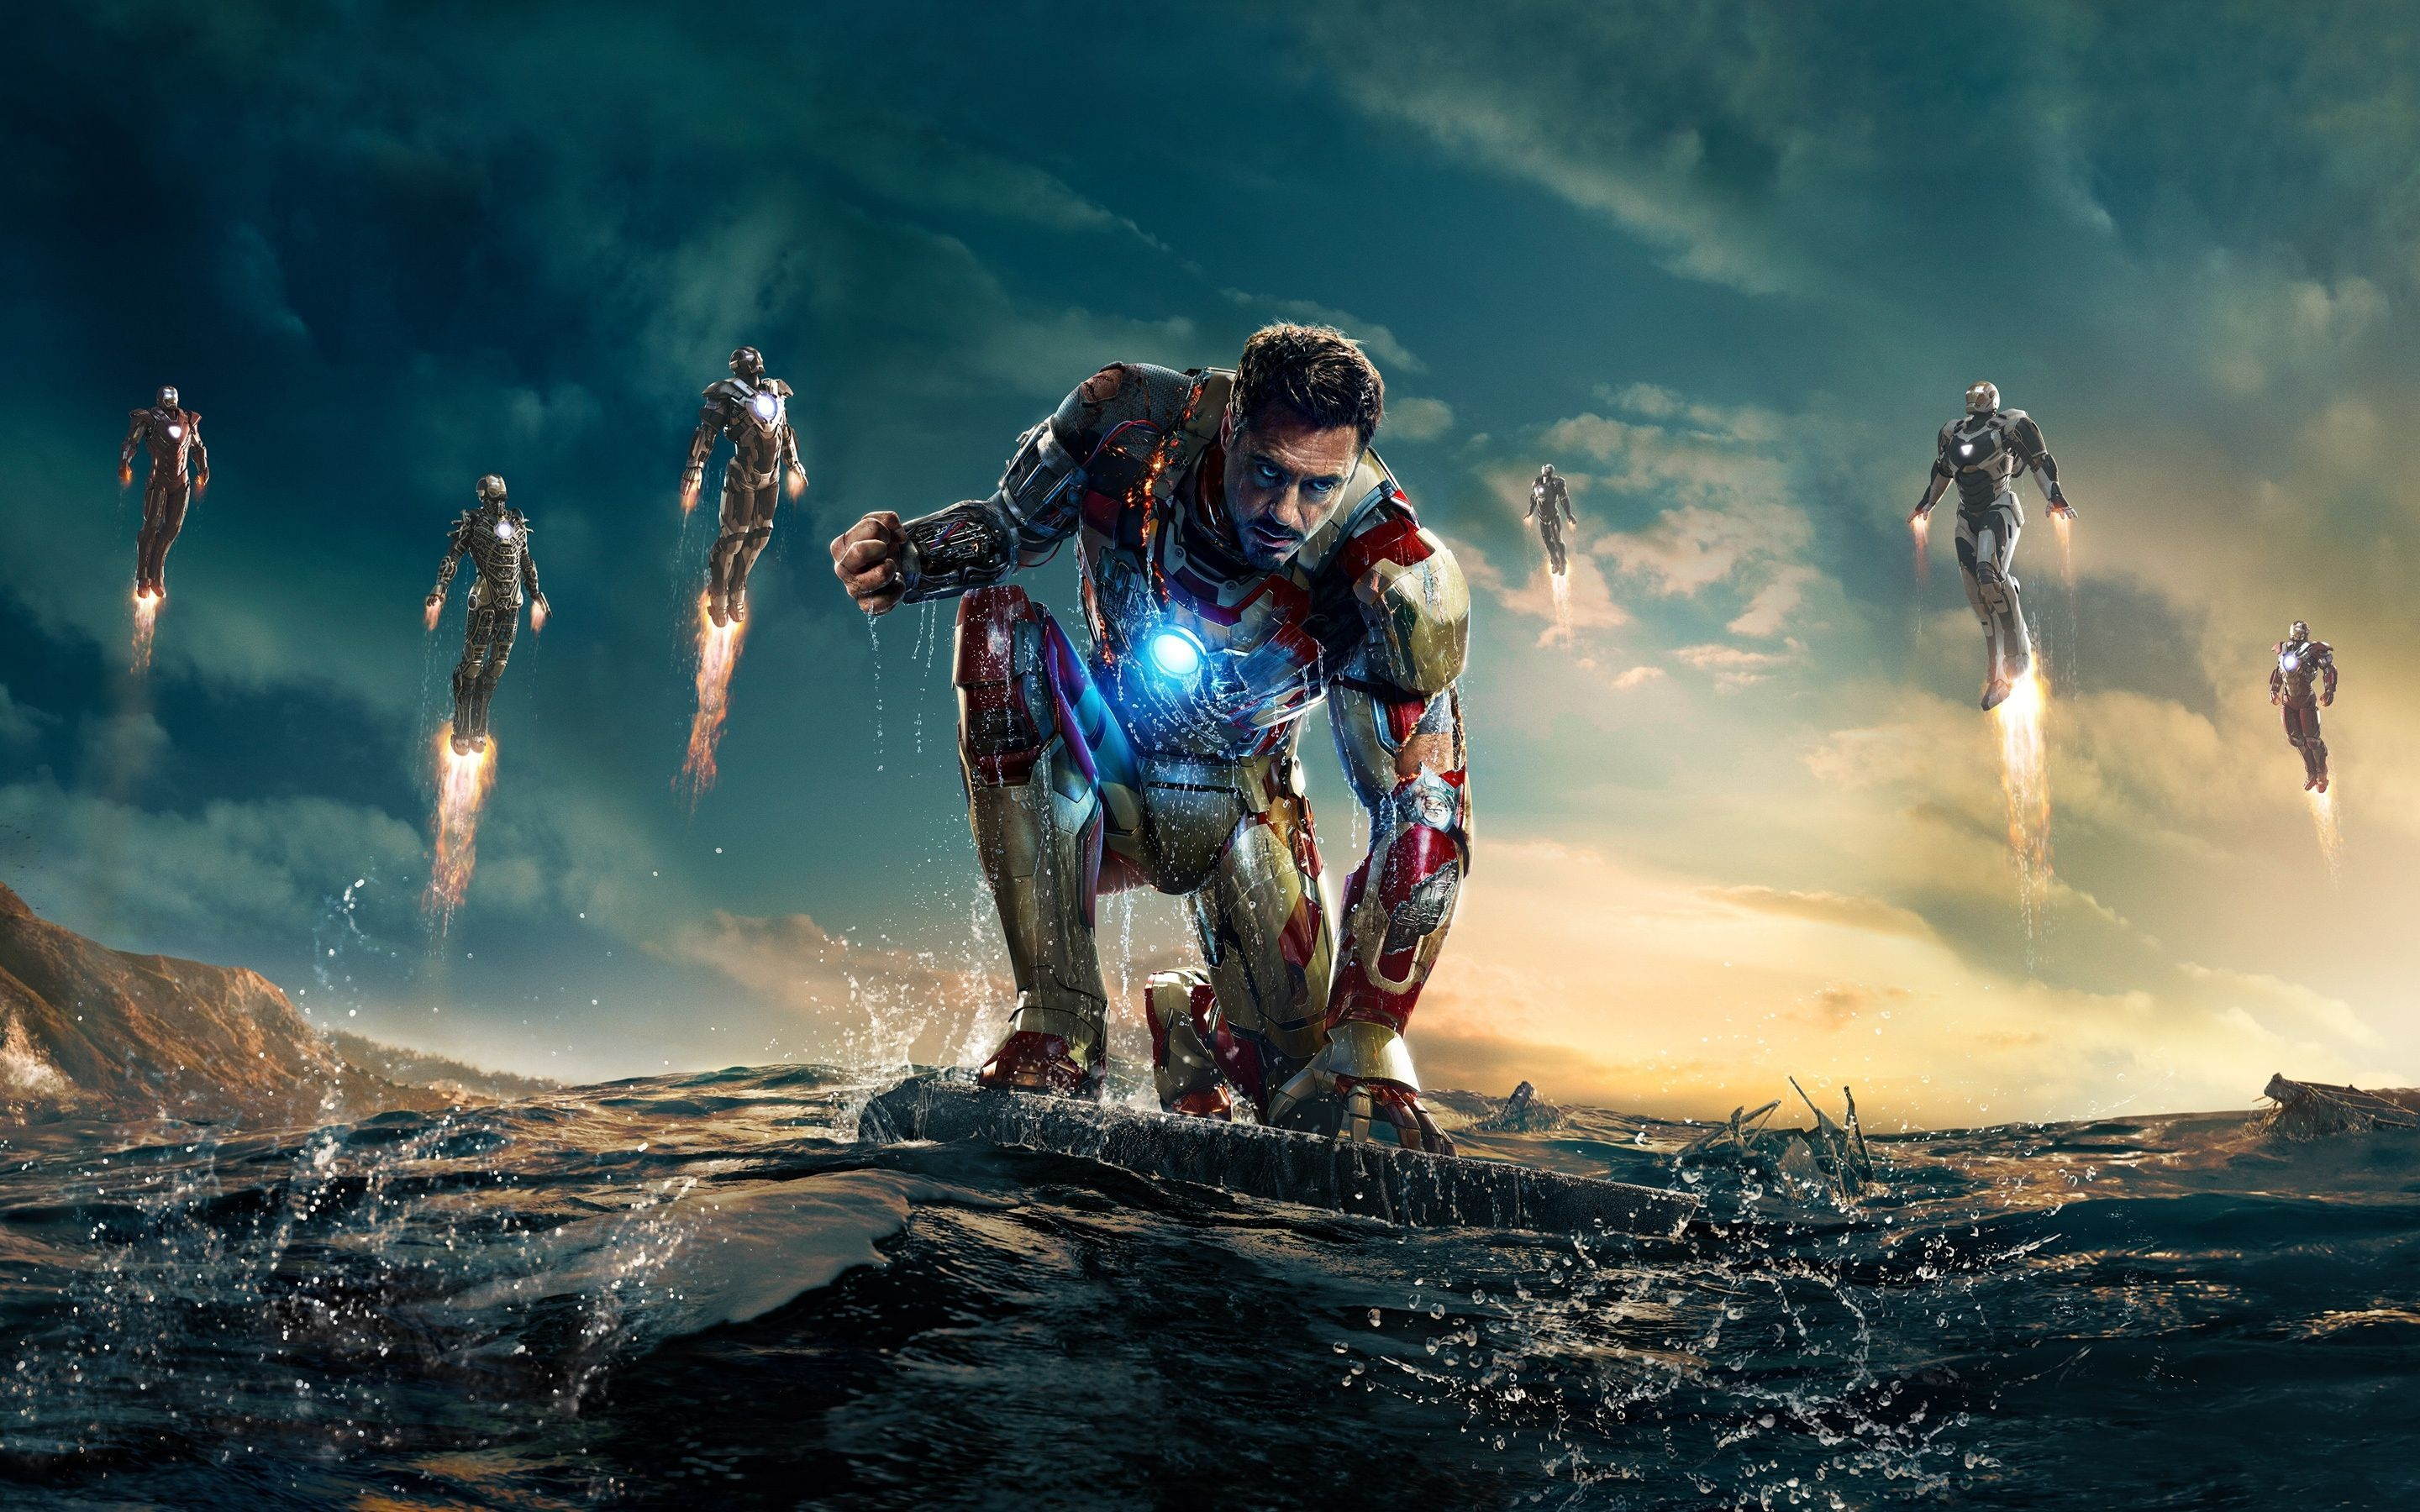 iron patriot in iron man 3 4k or hd wallpaper for your pc mac or download wallpaper pinterest hd wallpaper and wallpaper